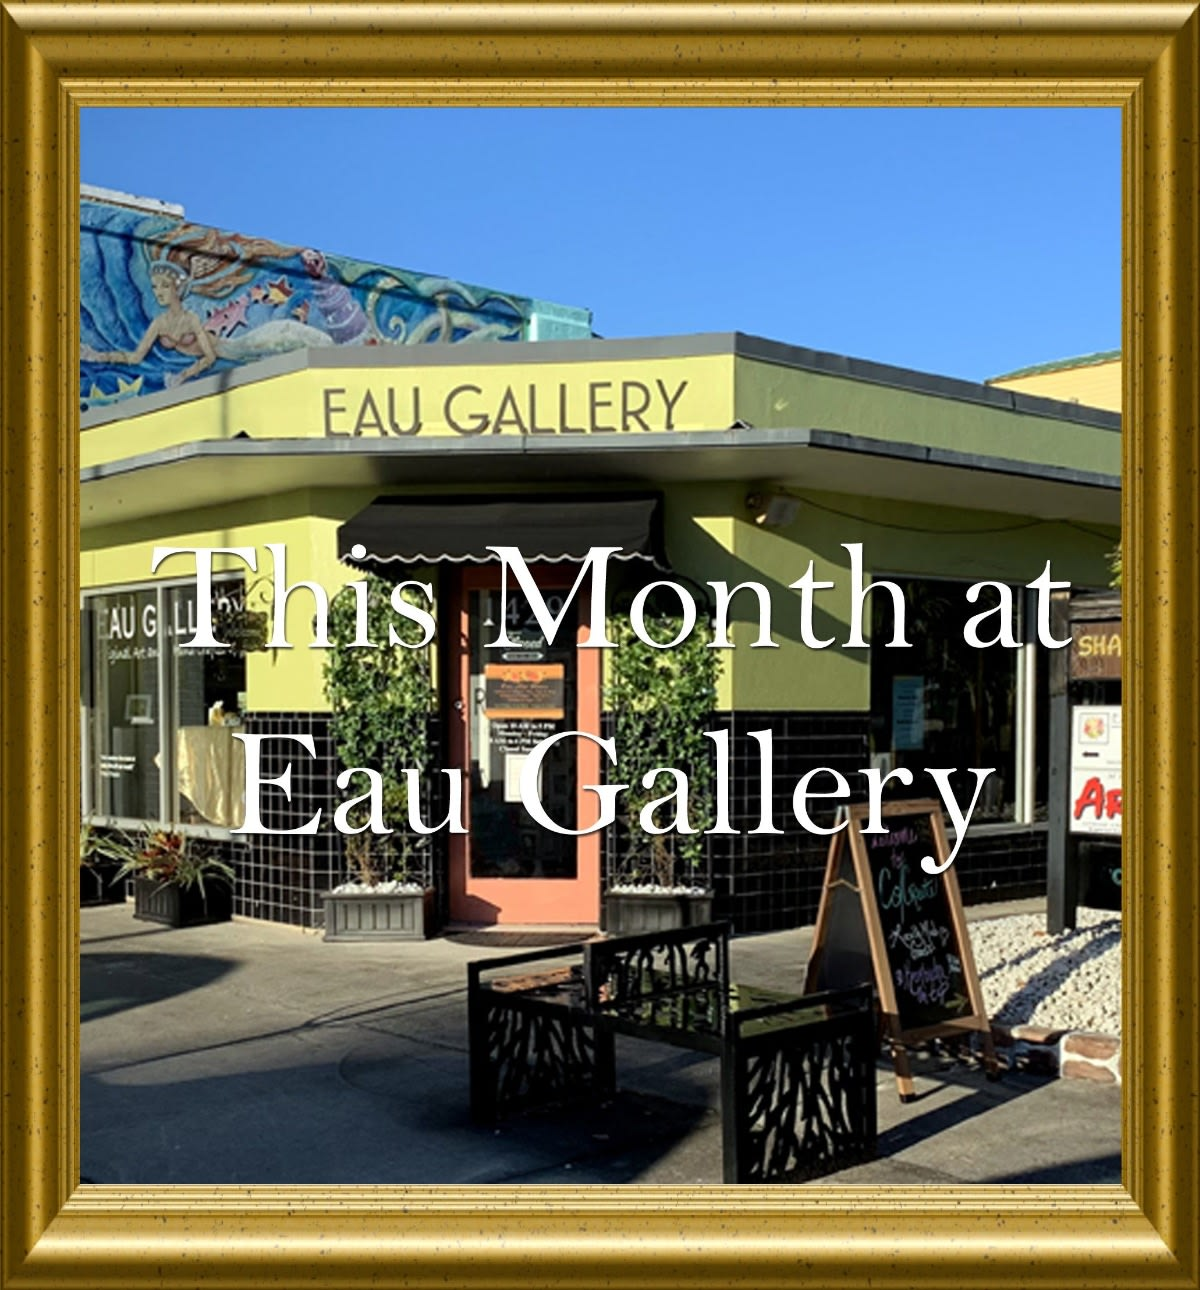 What's Going On at Eau Gallery